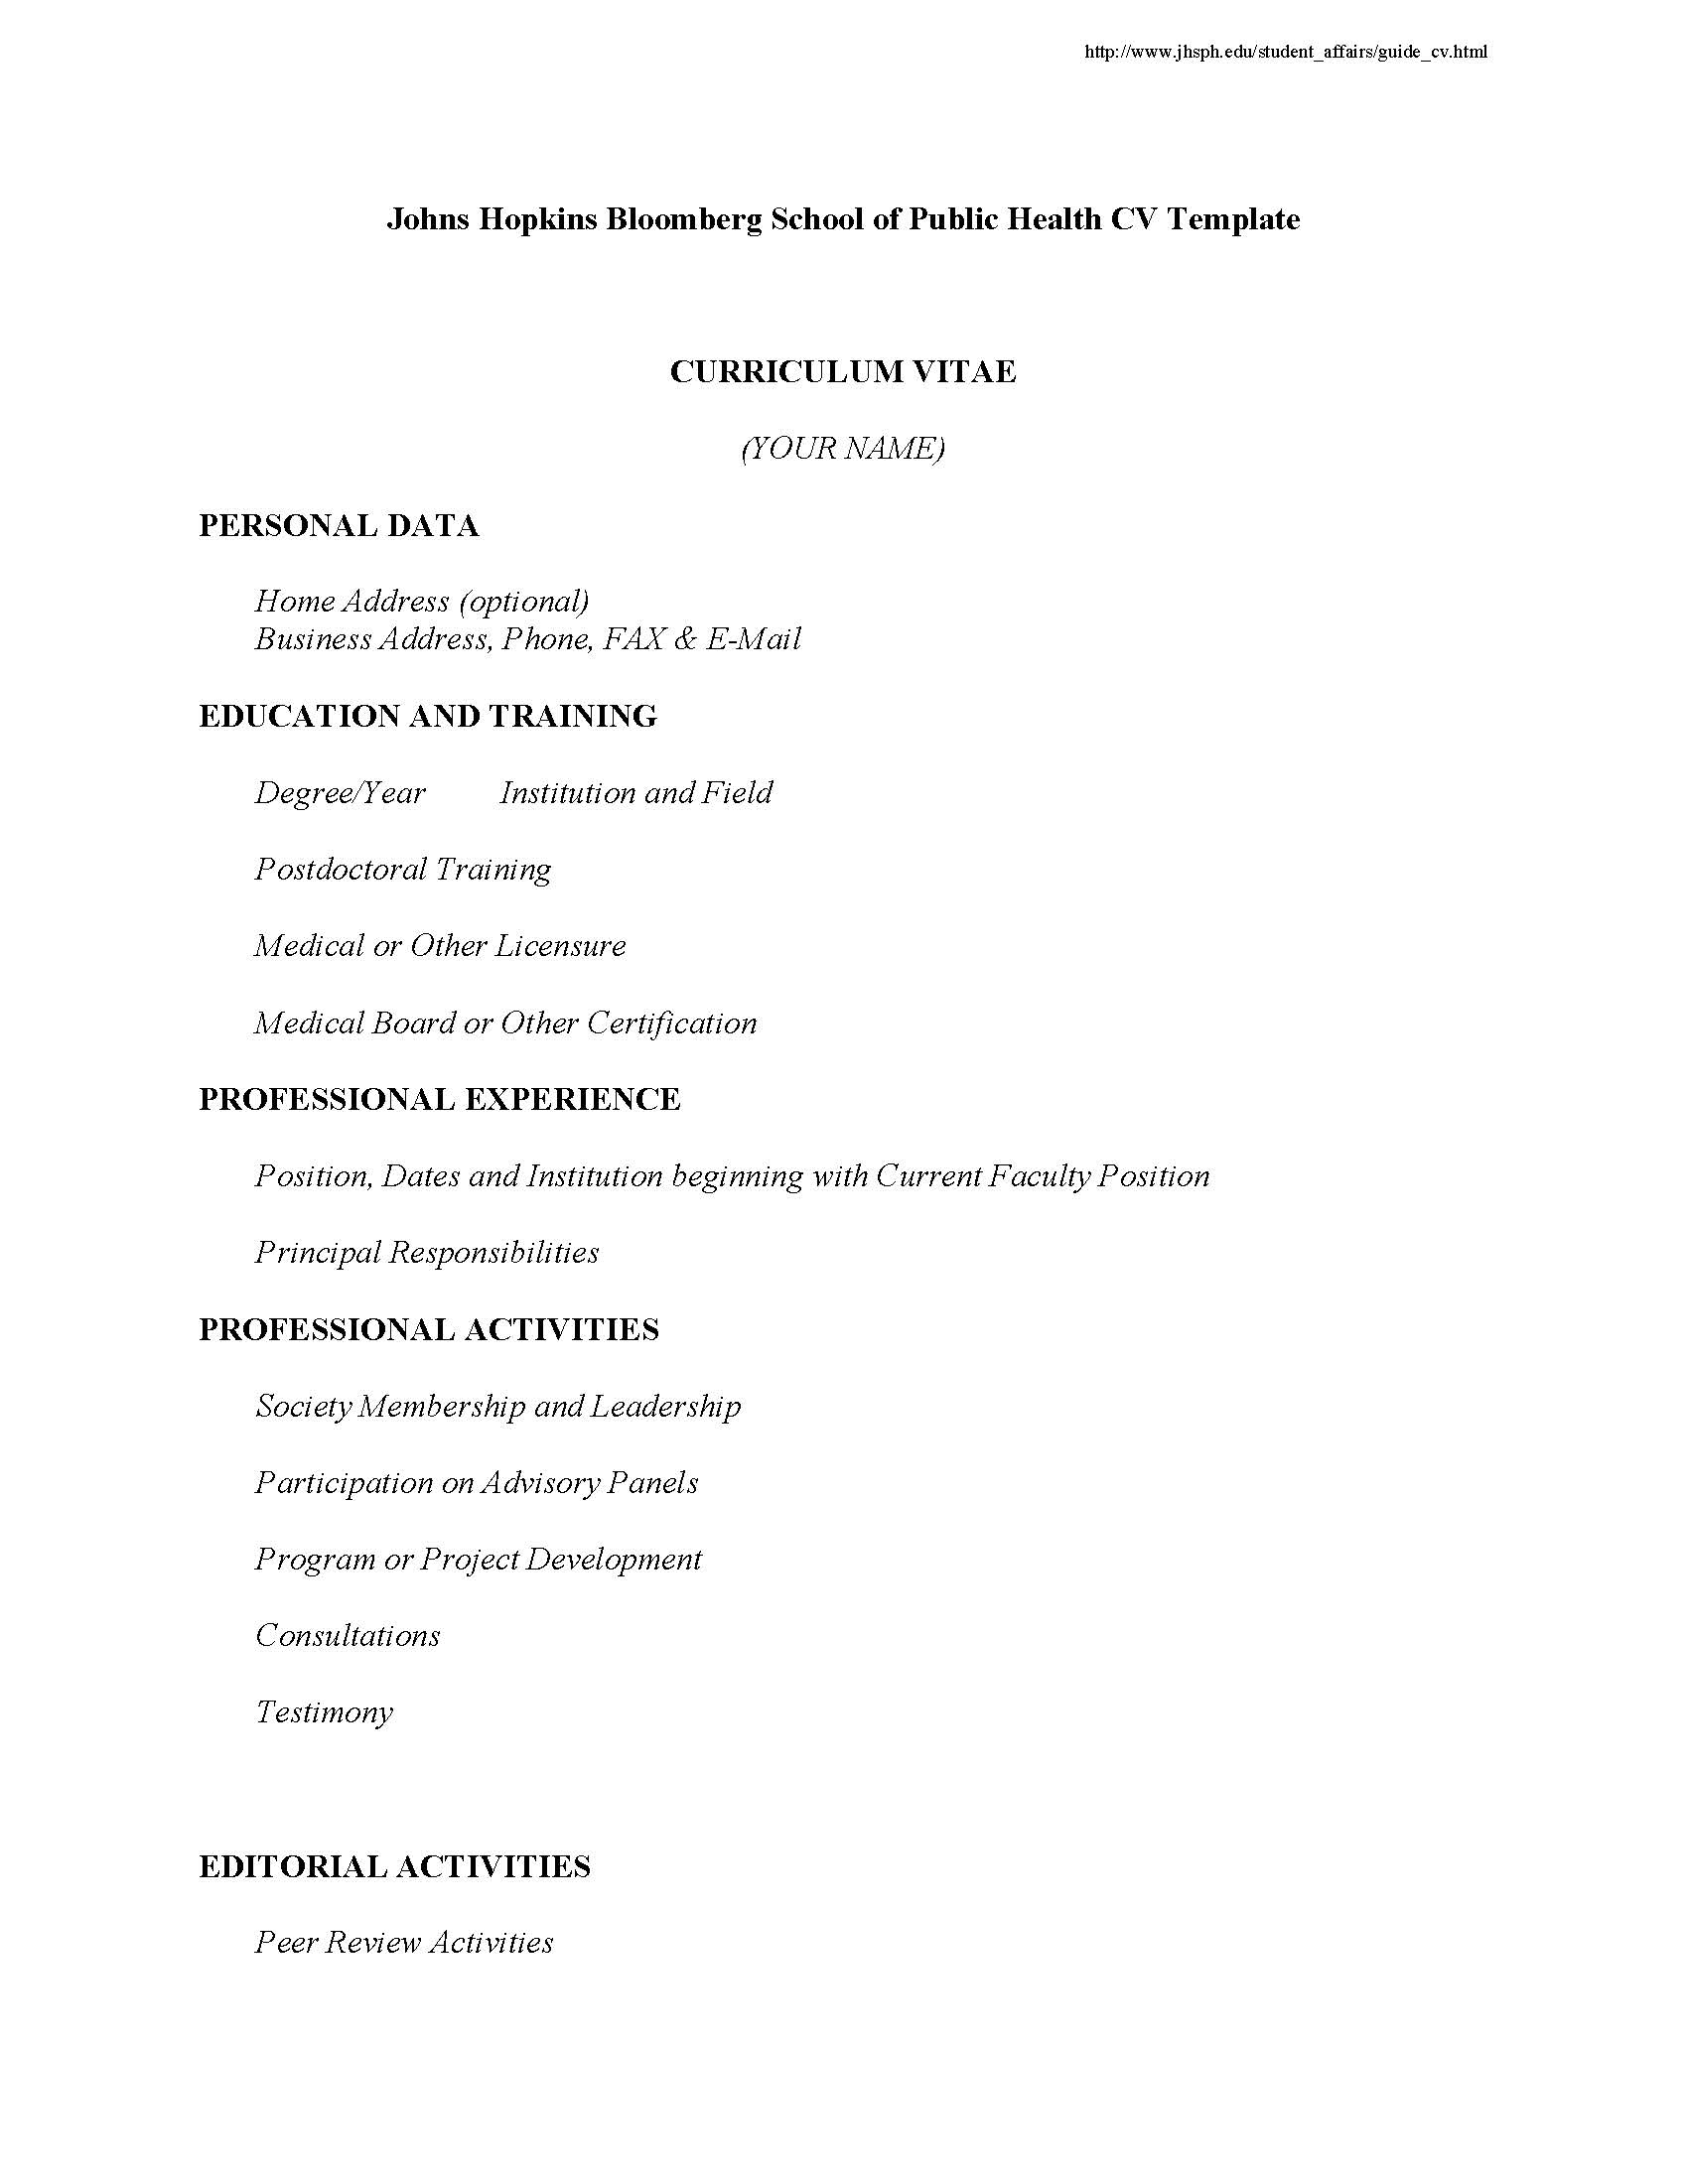 sample cv jhsph template jhsph cv template - How To Write Cv Resume